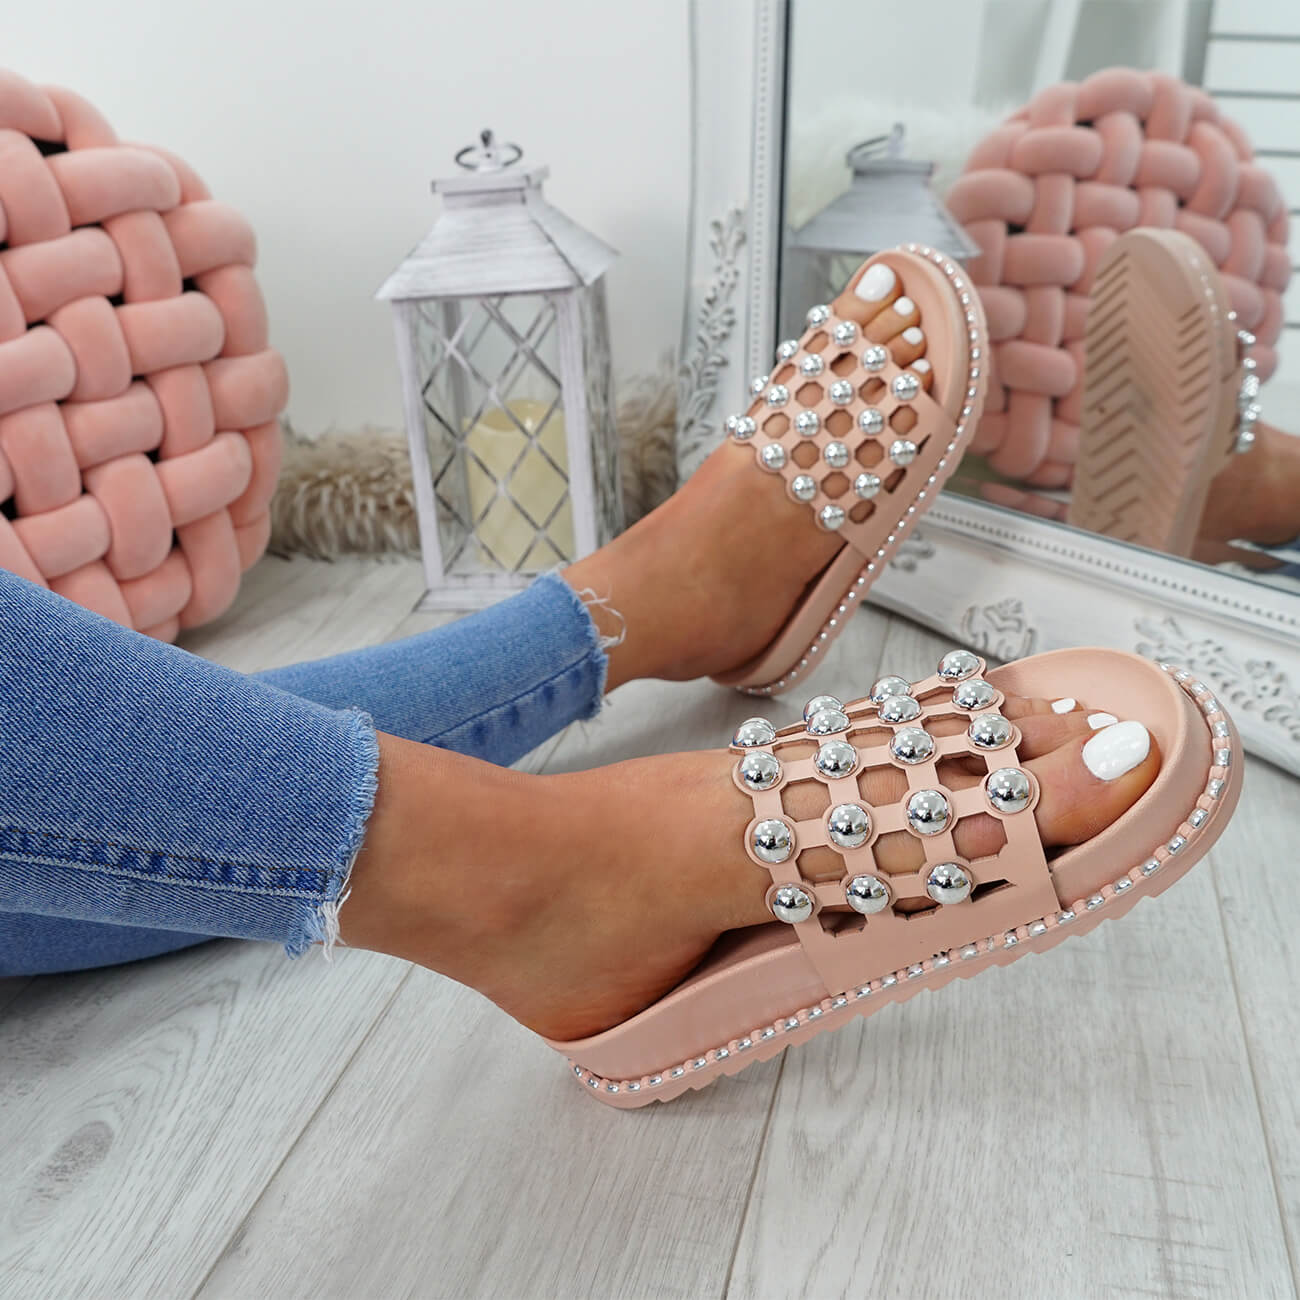 WOMENS-LADIES-PEARL-STUDDED-SLIP-ON-FLAT-SANDALS-HEELS-FLIP-FLOP-SHOES-SIZE thumbnail 14